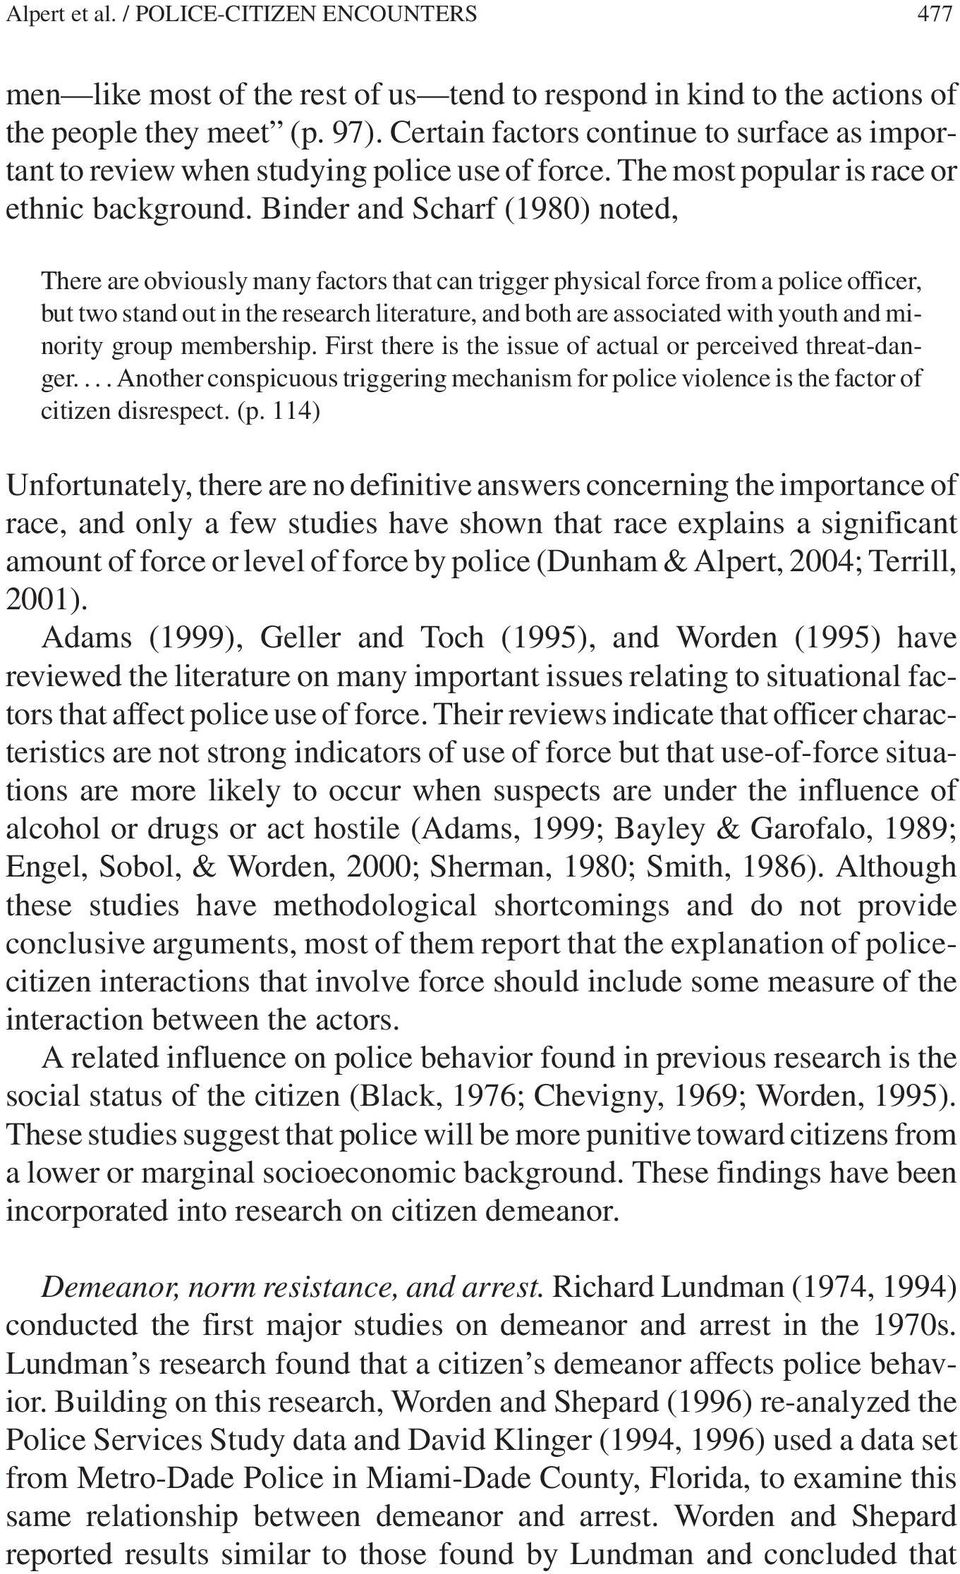 Binder and Scharf (1980) noted, There are obviously many factors that can trigger physical force from a police officer, but two stand out in the research literature, and both are associated with